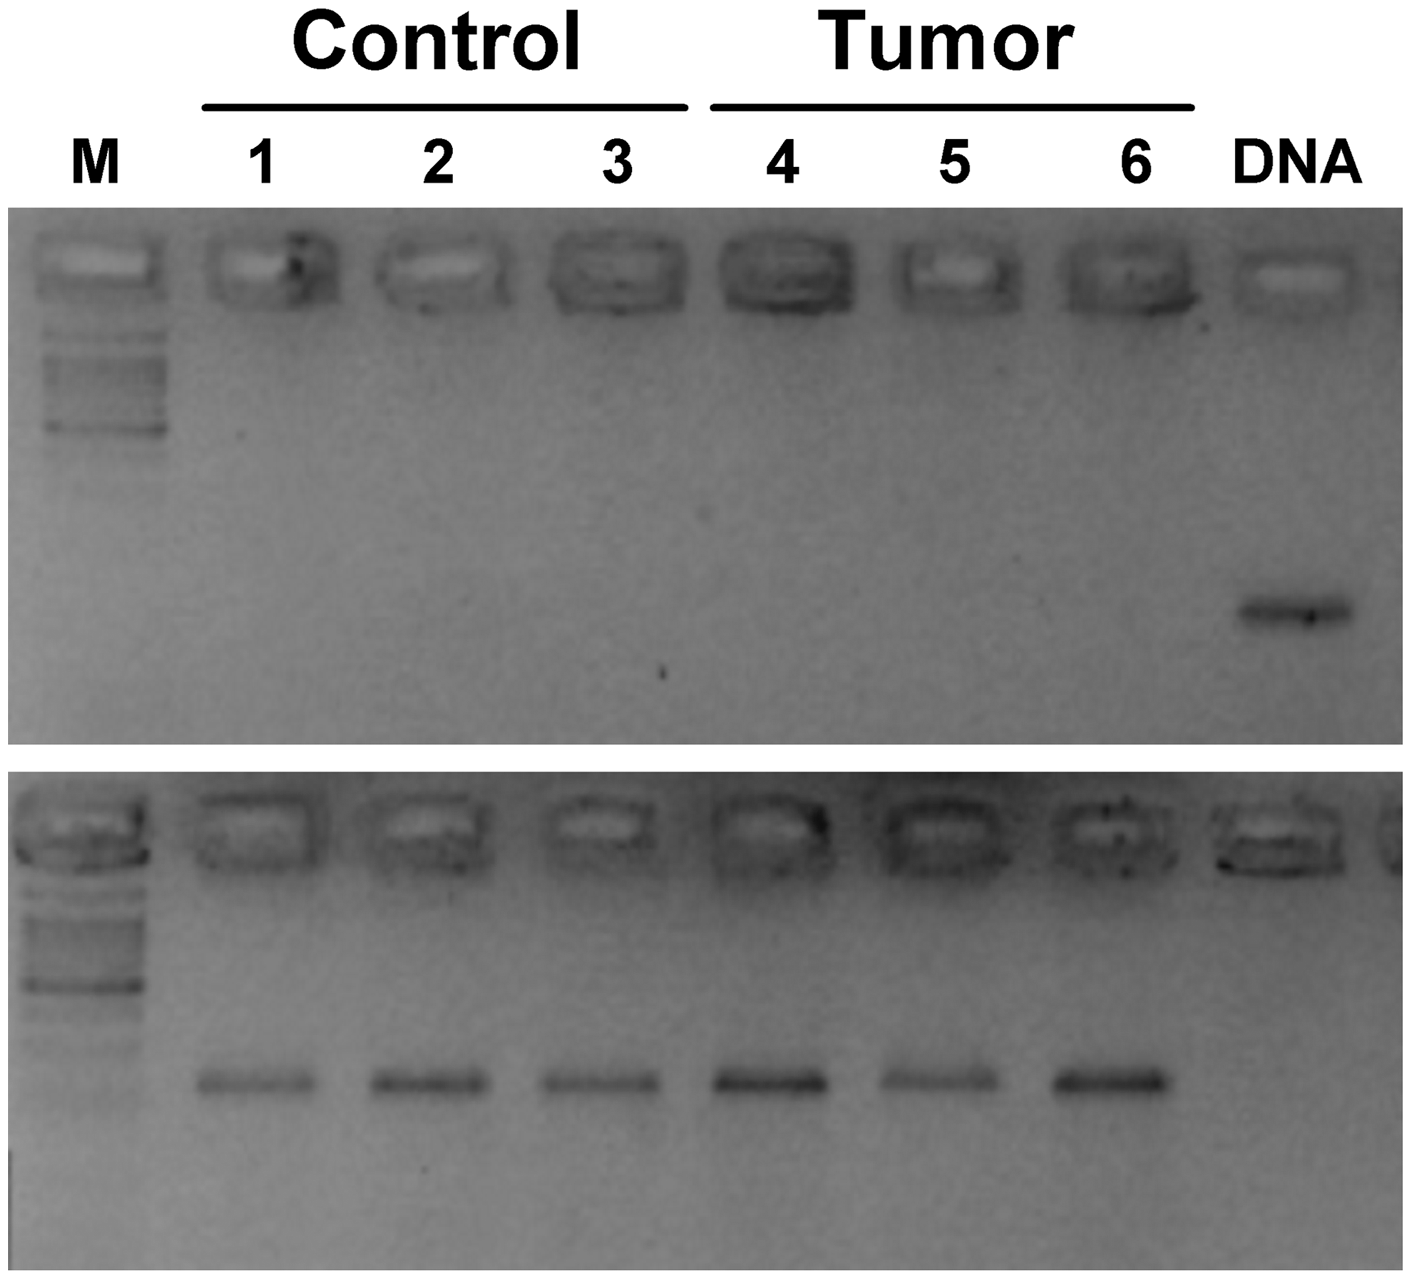 Absence of <i>Lasc1</i> gene expression in mouse normal lung and lung tumors of (A/J×C57BL/6J)F1 mice.